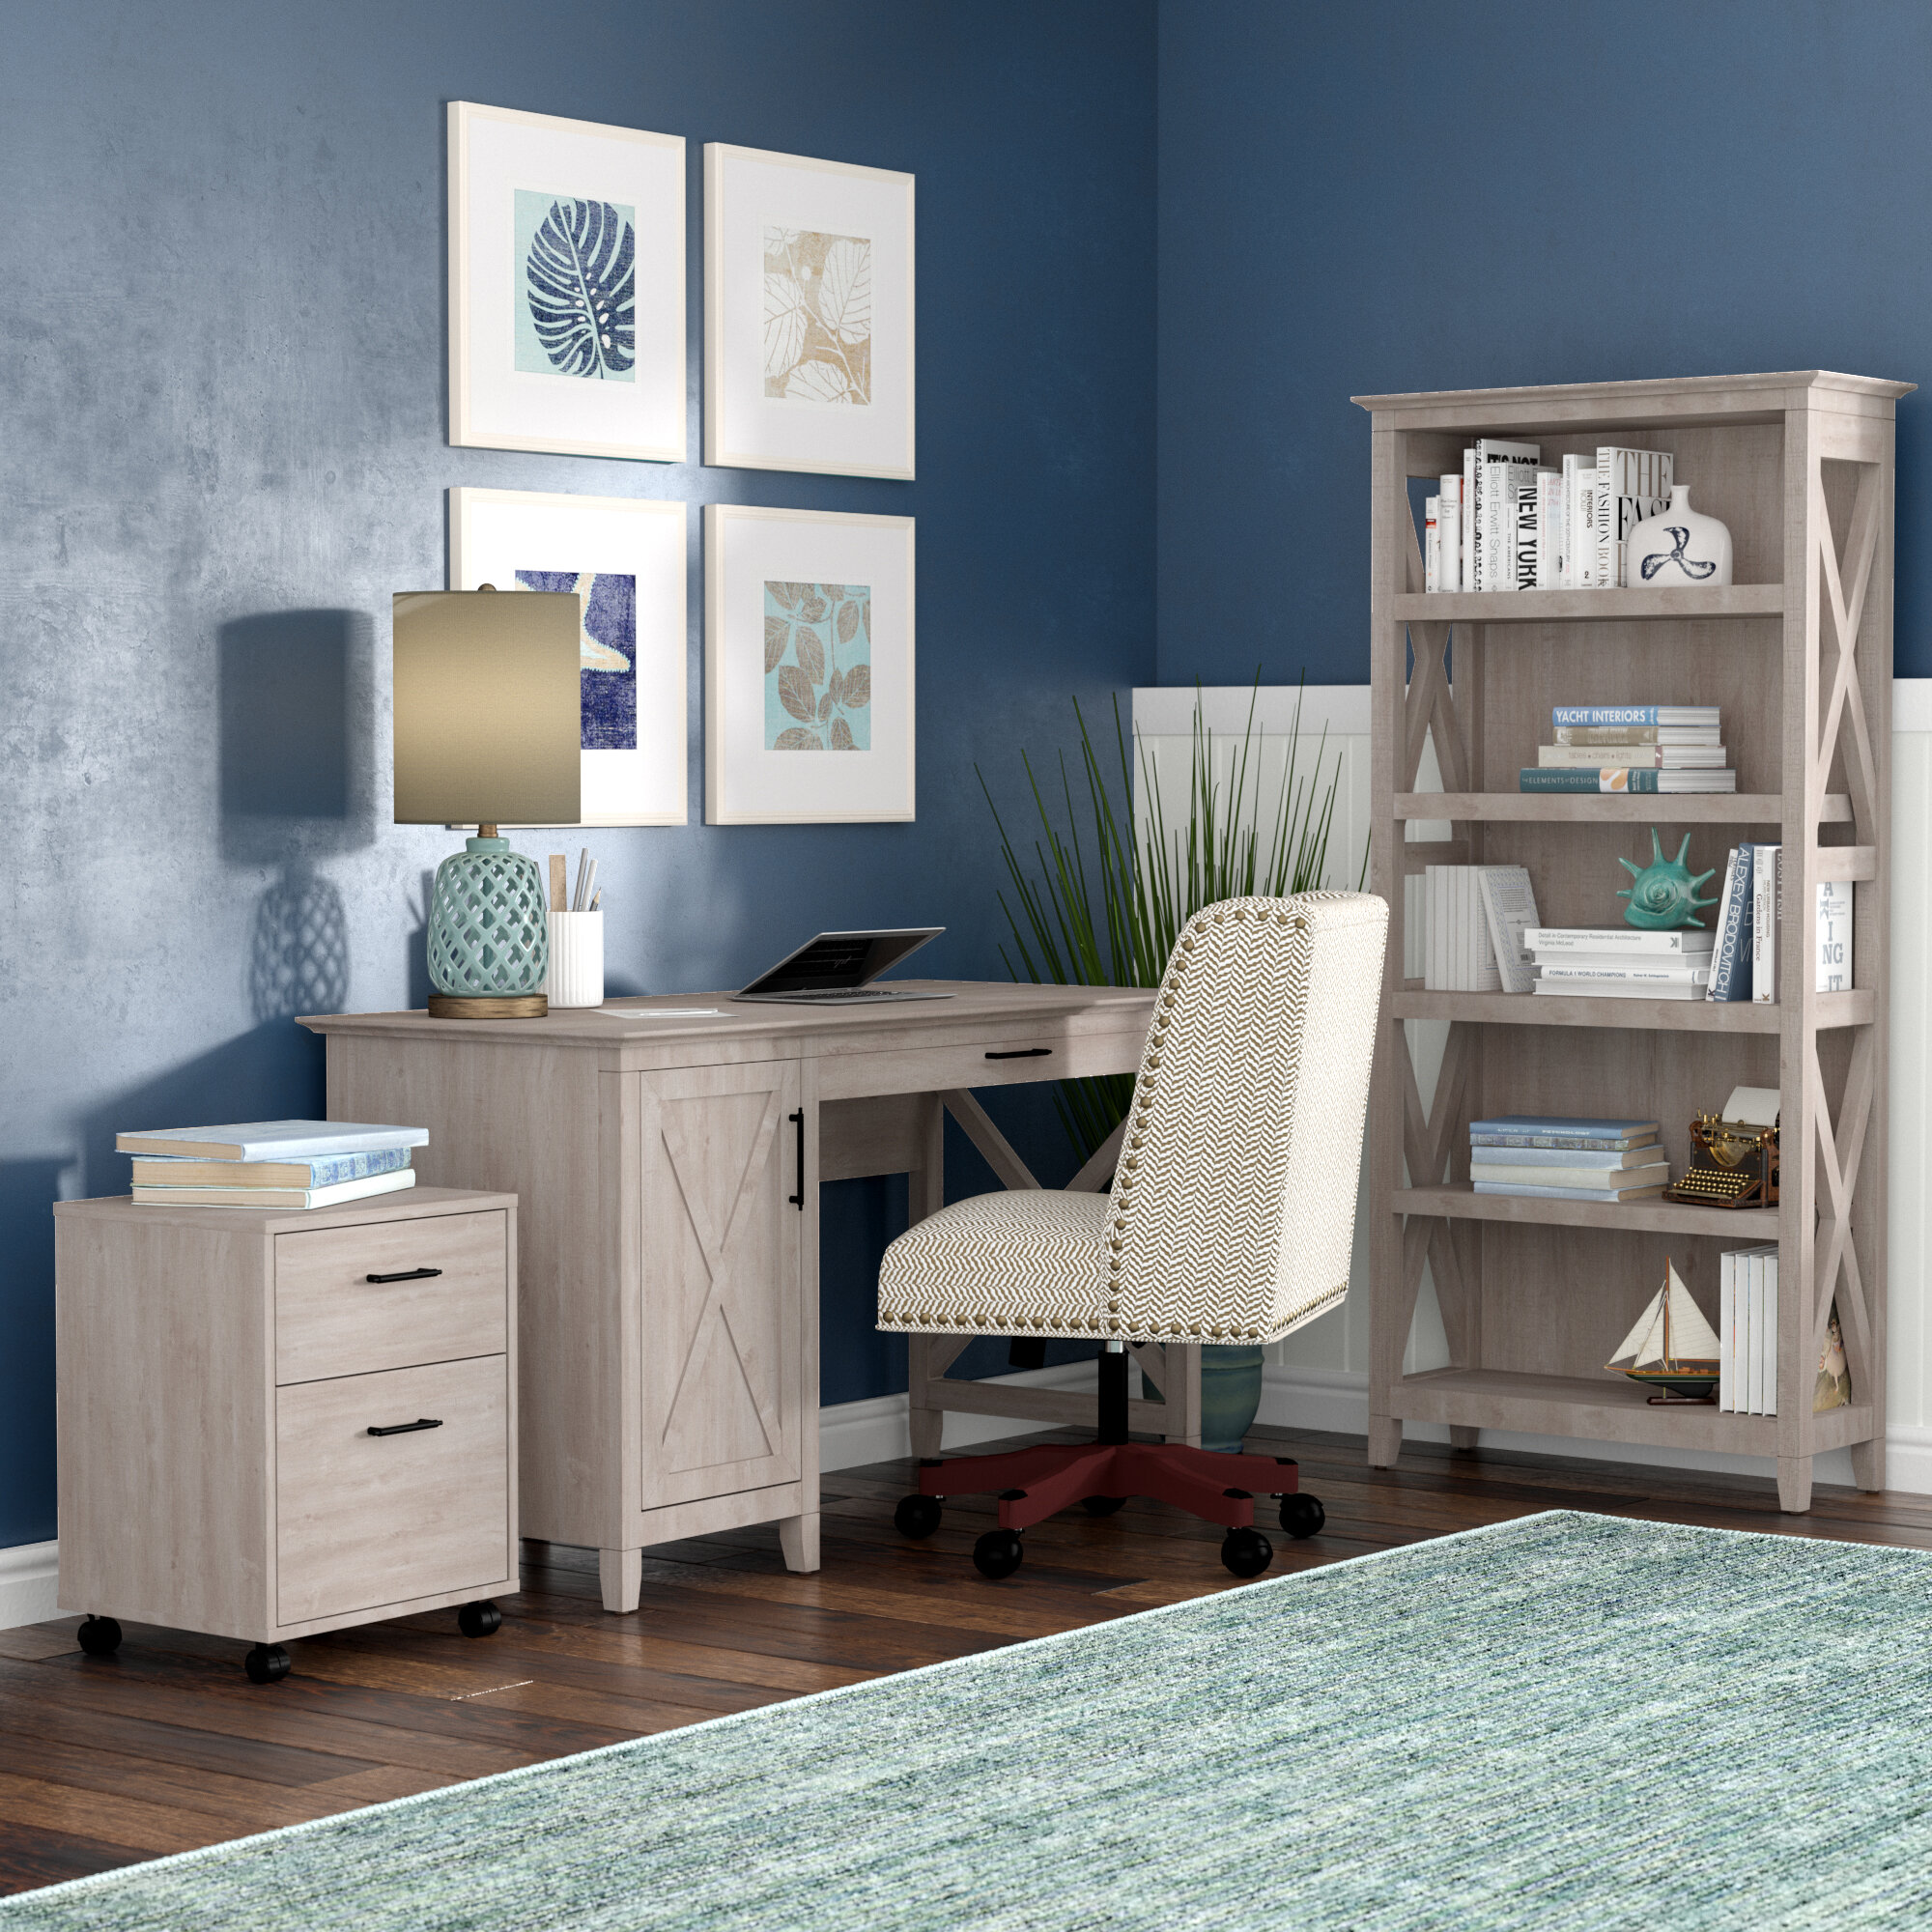 Oridatown Desk Bookcase And Filing Cabinet Set